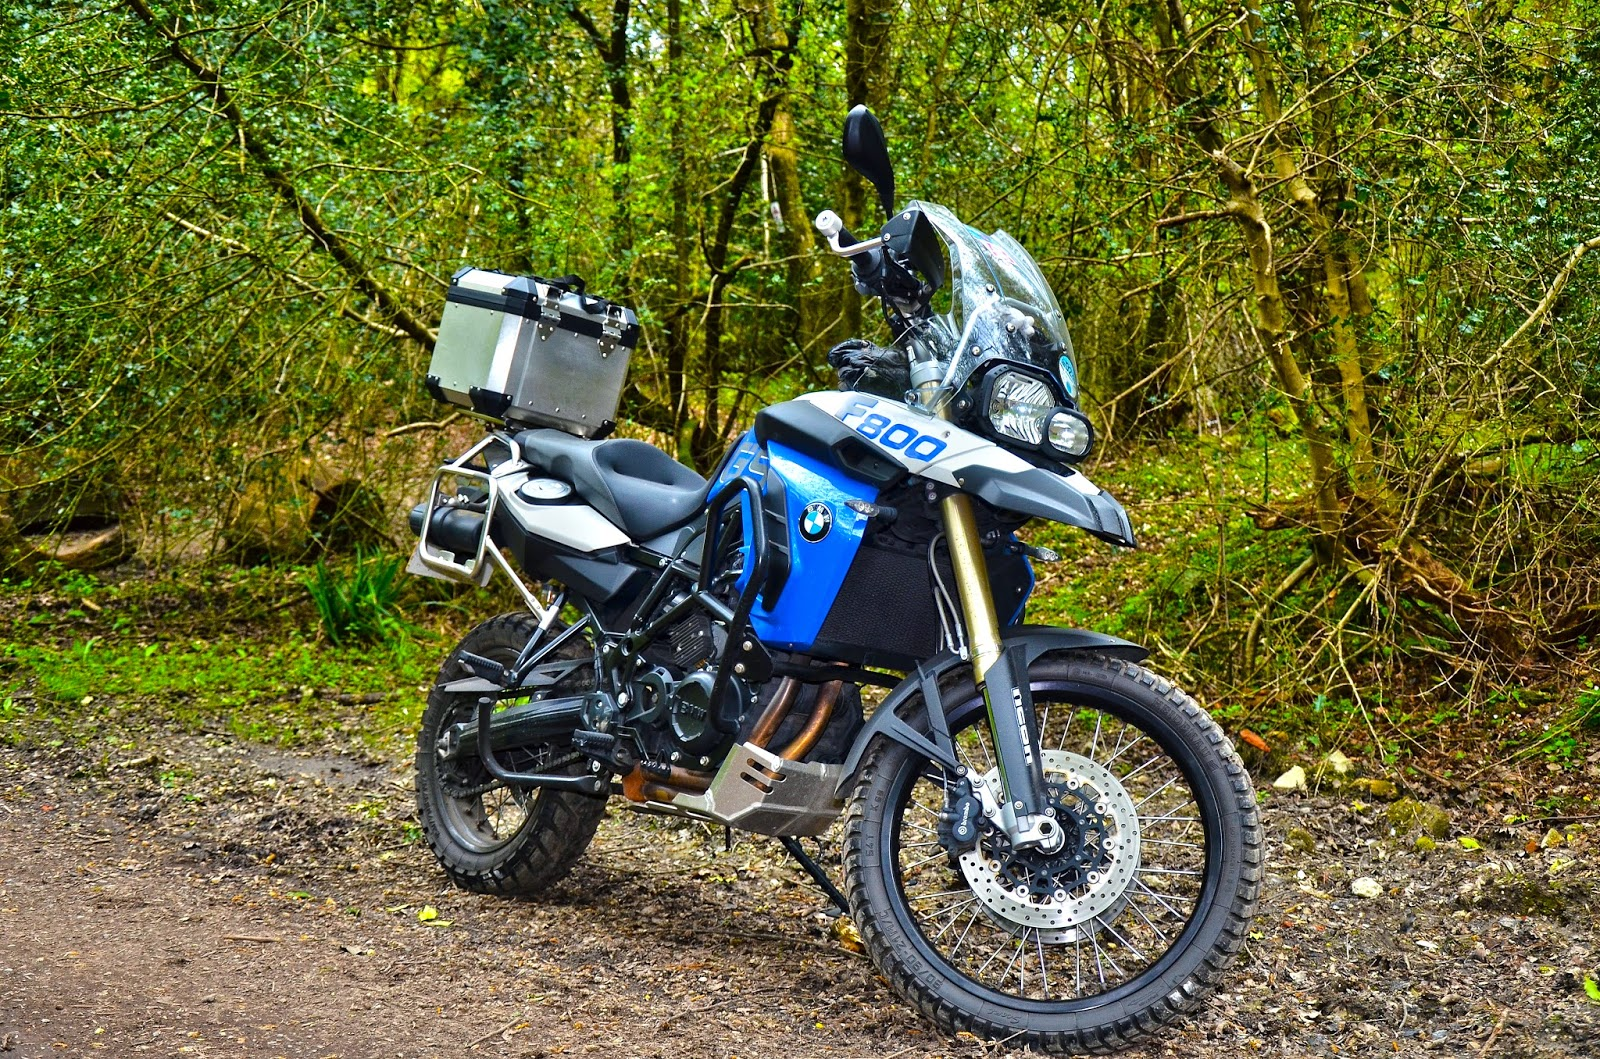 Two And A Half Years On With The F800gs Gelande Strassetastic